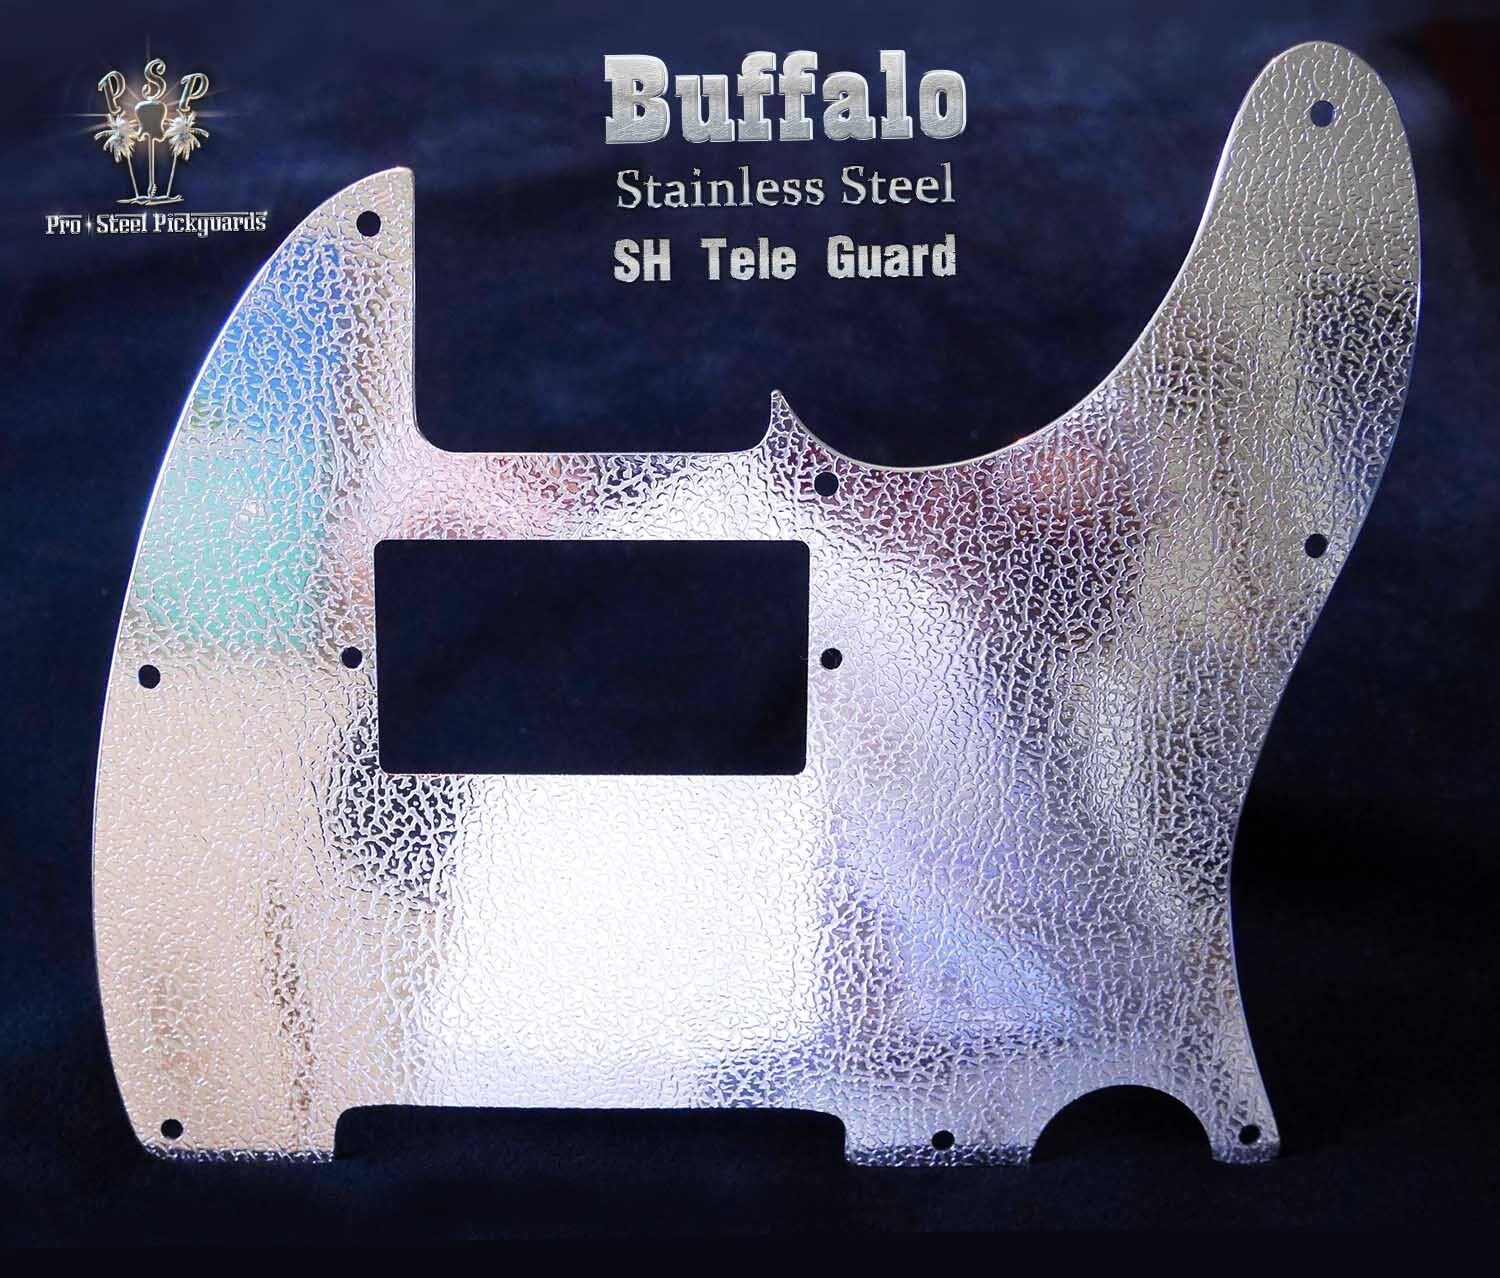 TELE S H METAL CHROME BLING Genuine Pro-Steel Pickguard, Fender Telecaster Guard